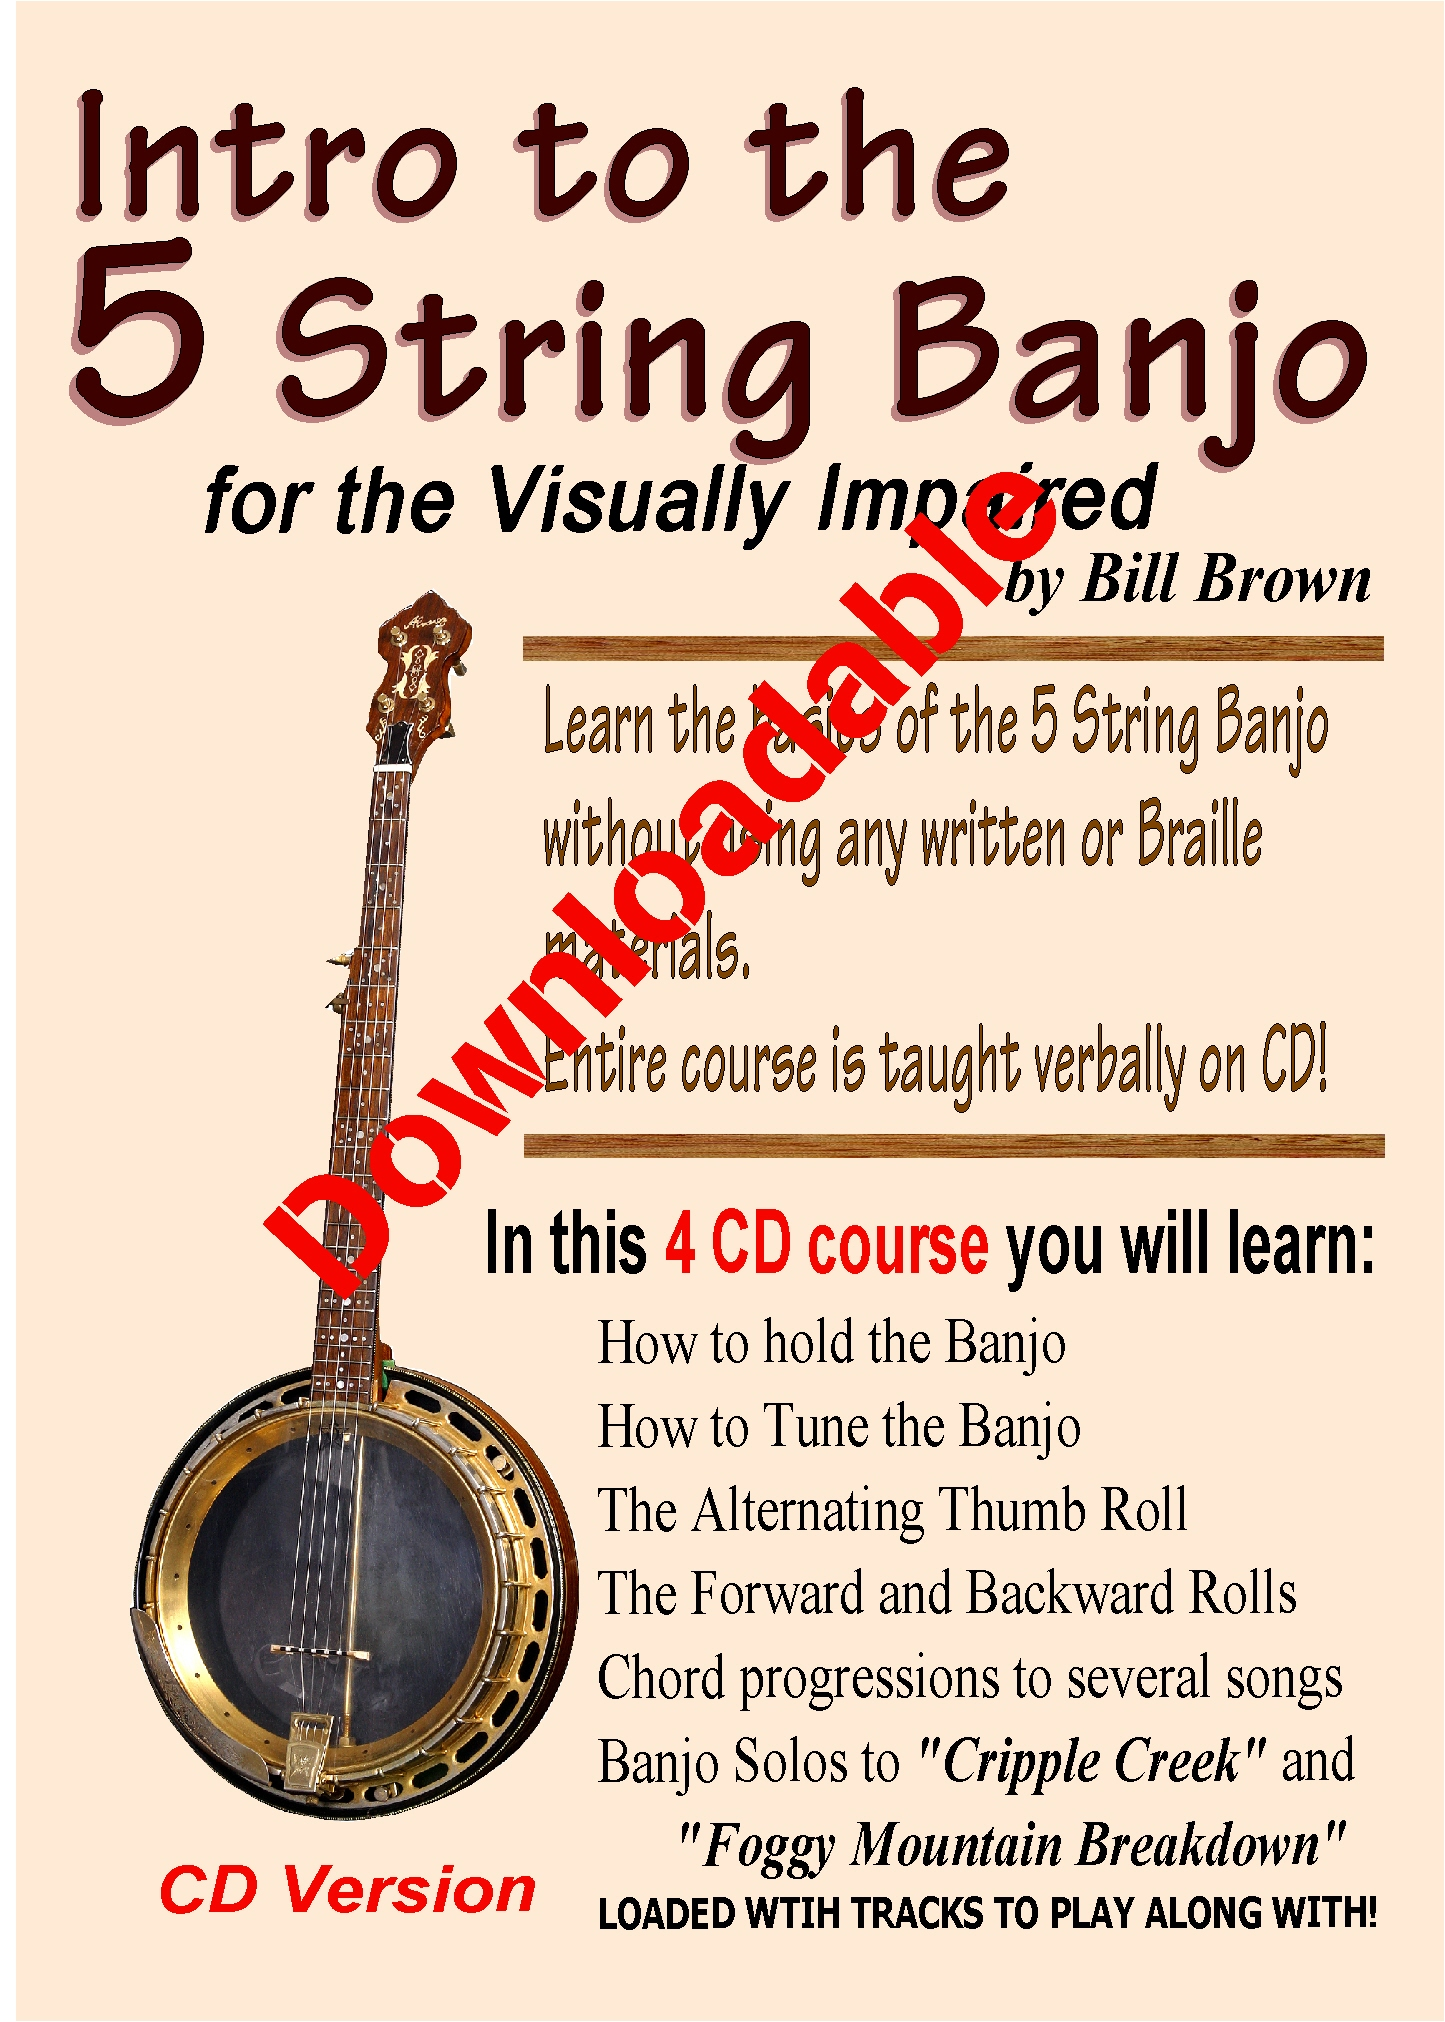 Intro to the 5 String Banjo for the Visually Impaired (Downloadable)